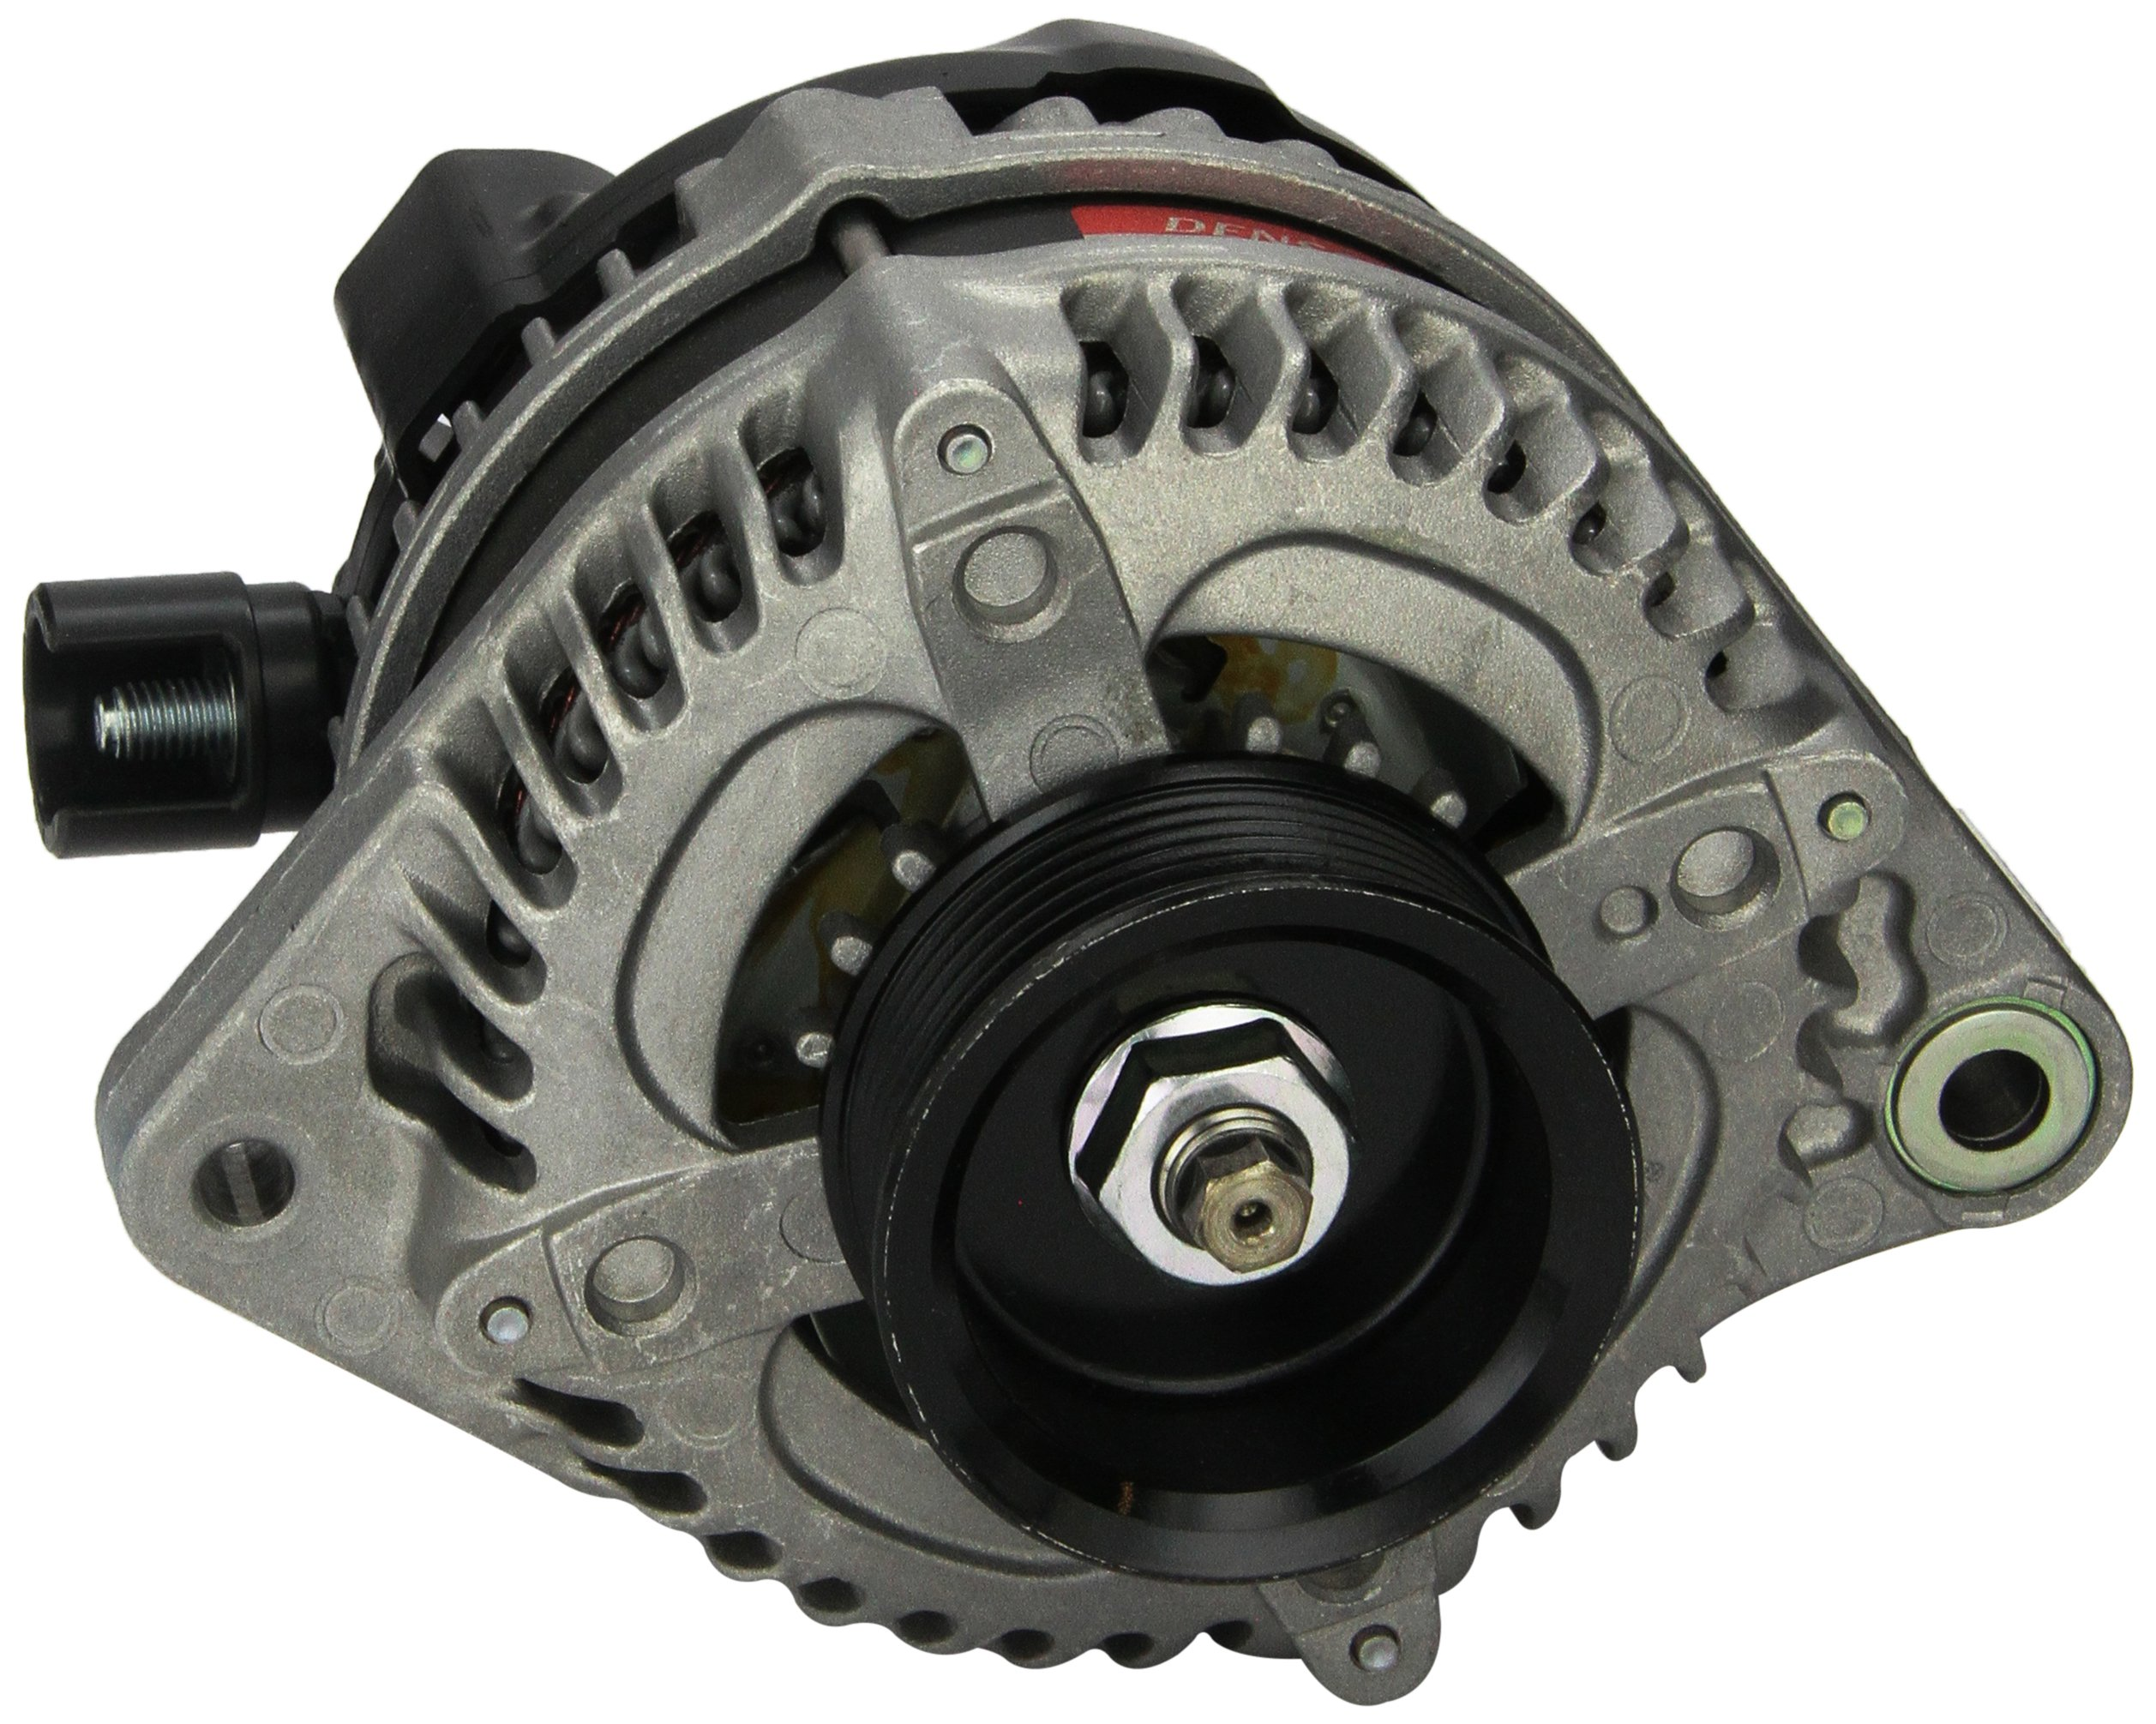 Denso 210-0580 Remanufactured Alternator by Denso